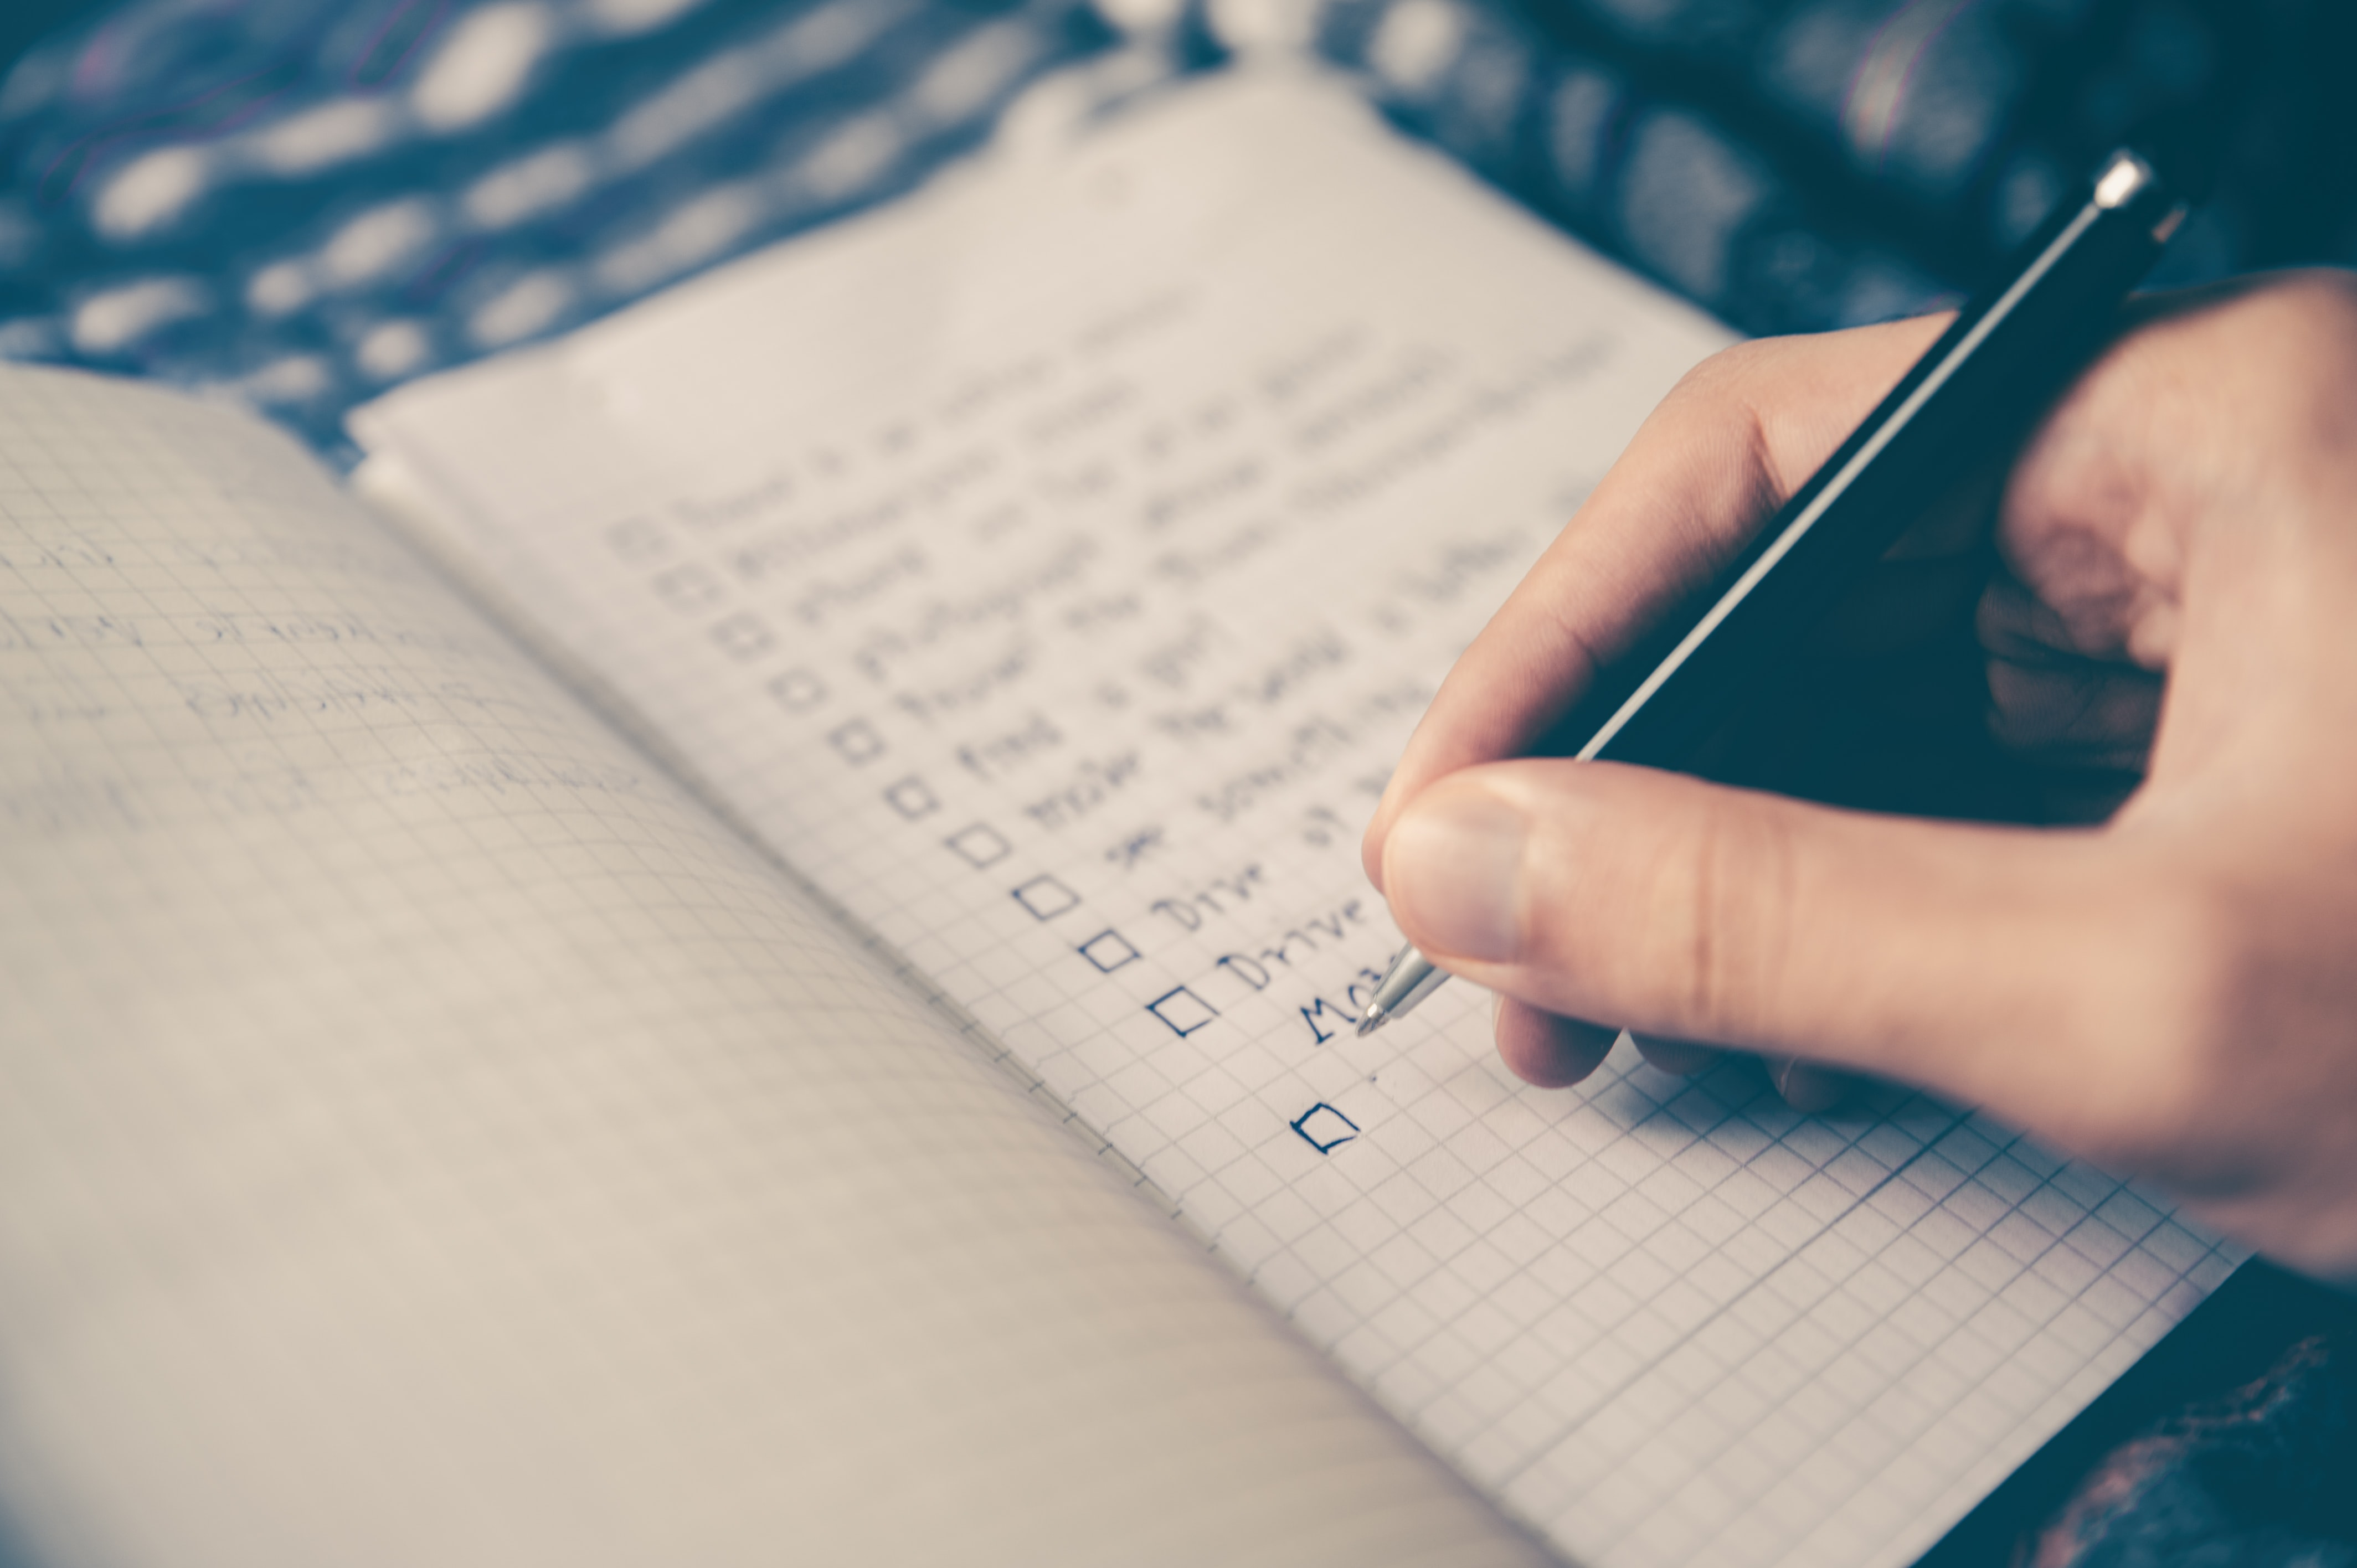 A person writing out a checklist or todo list.